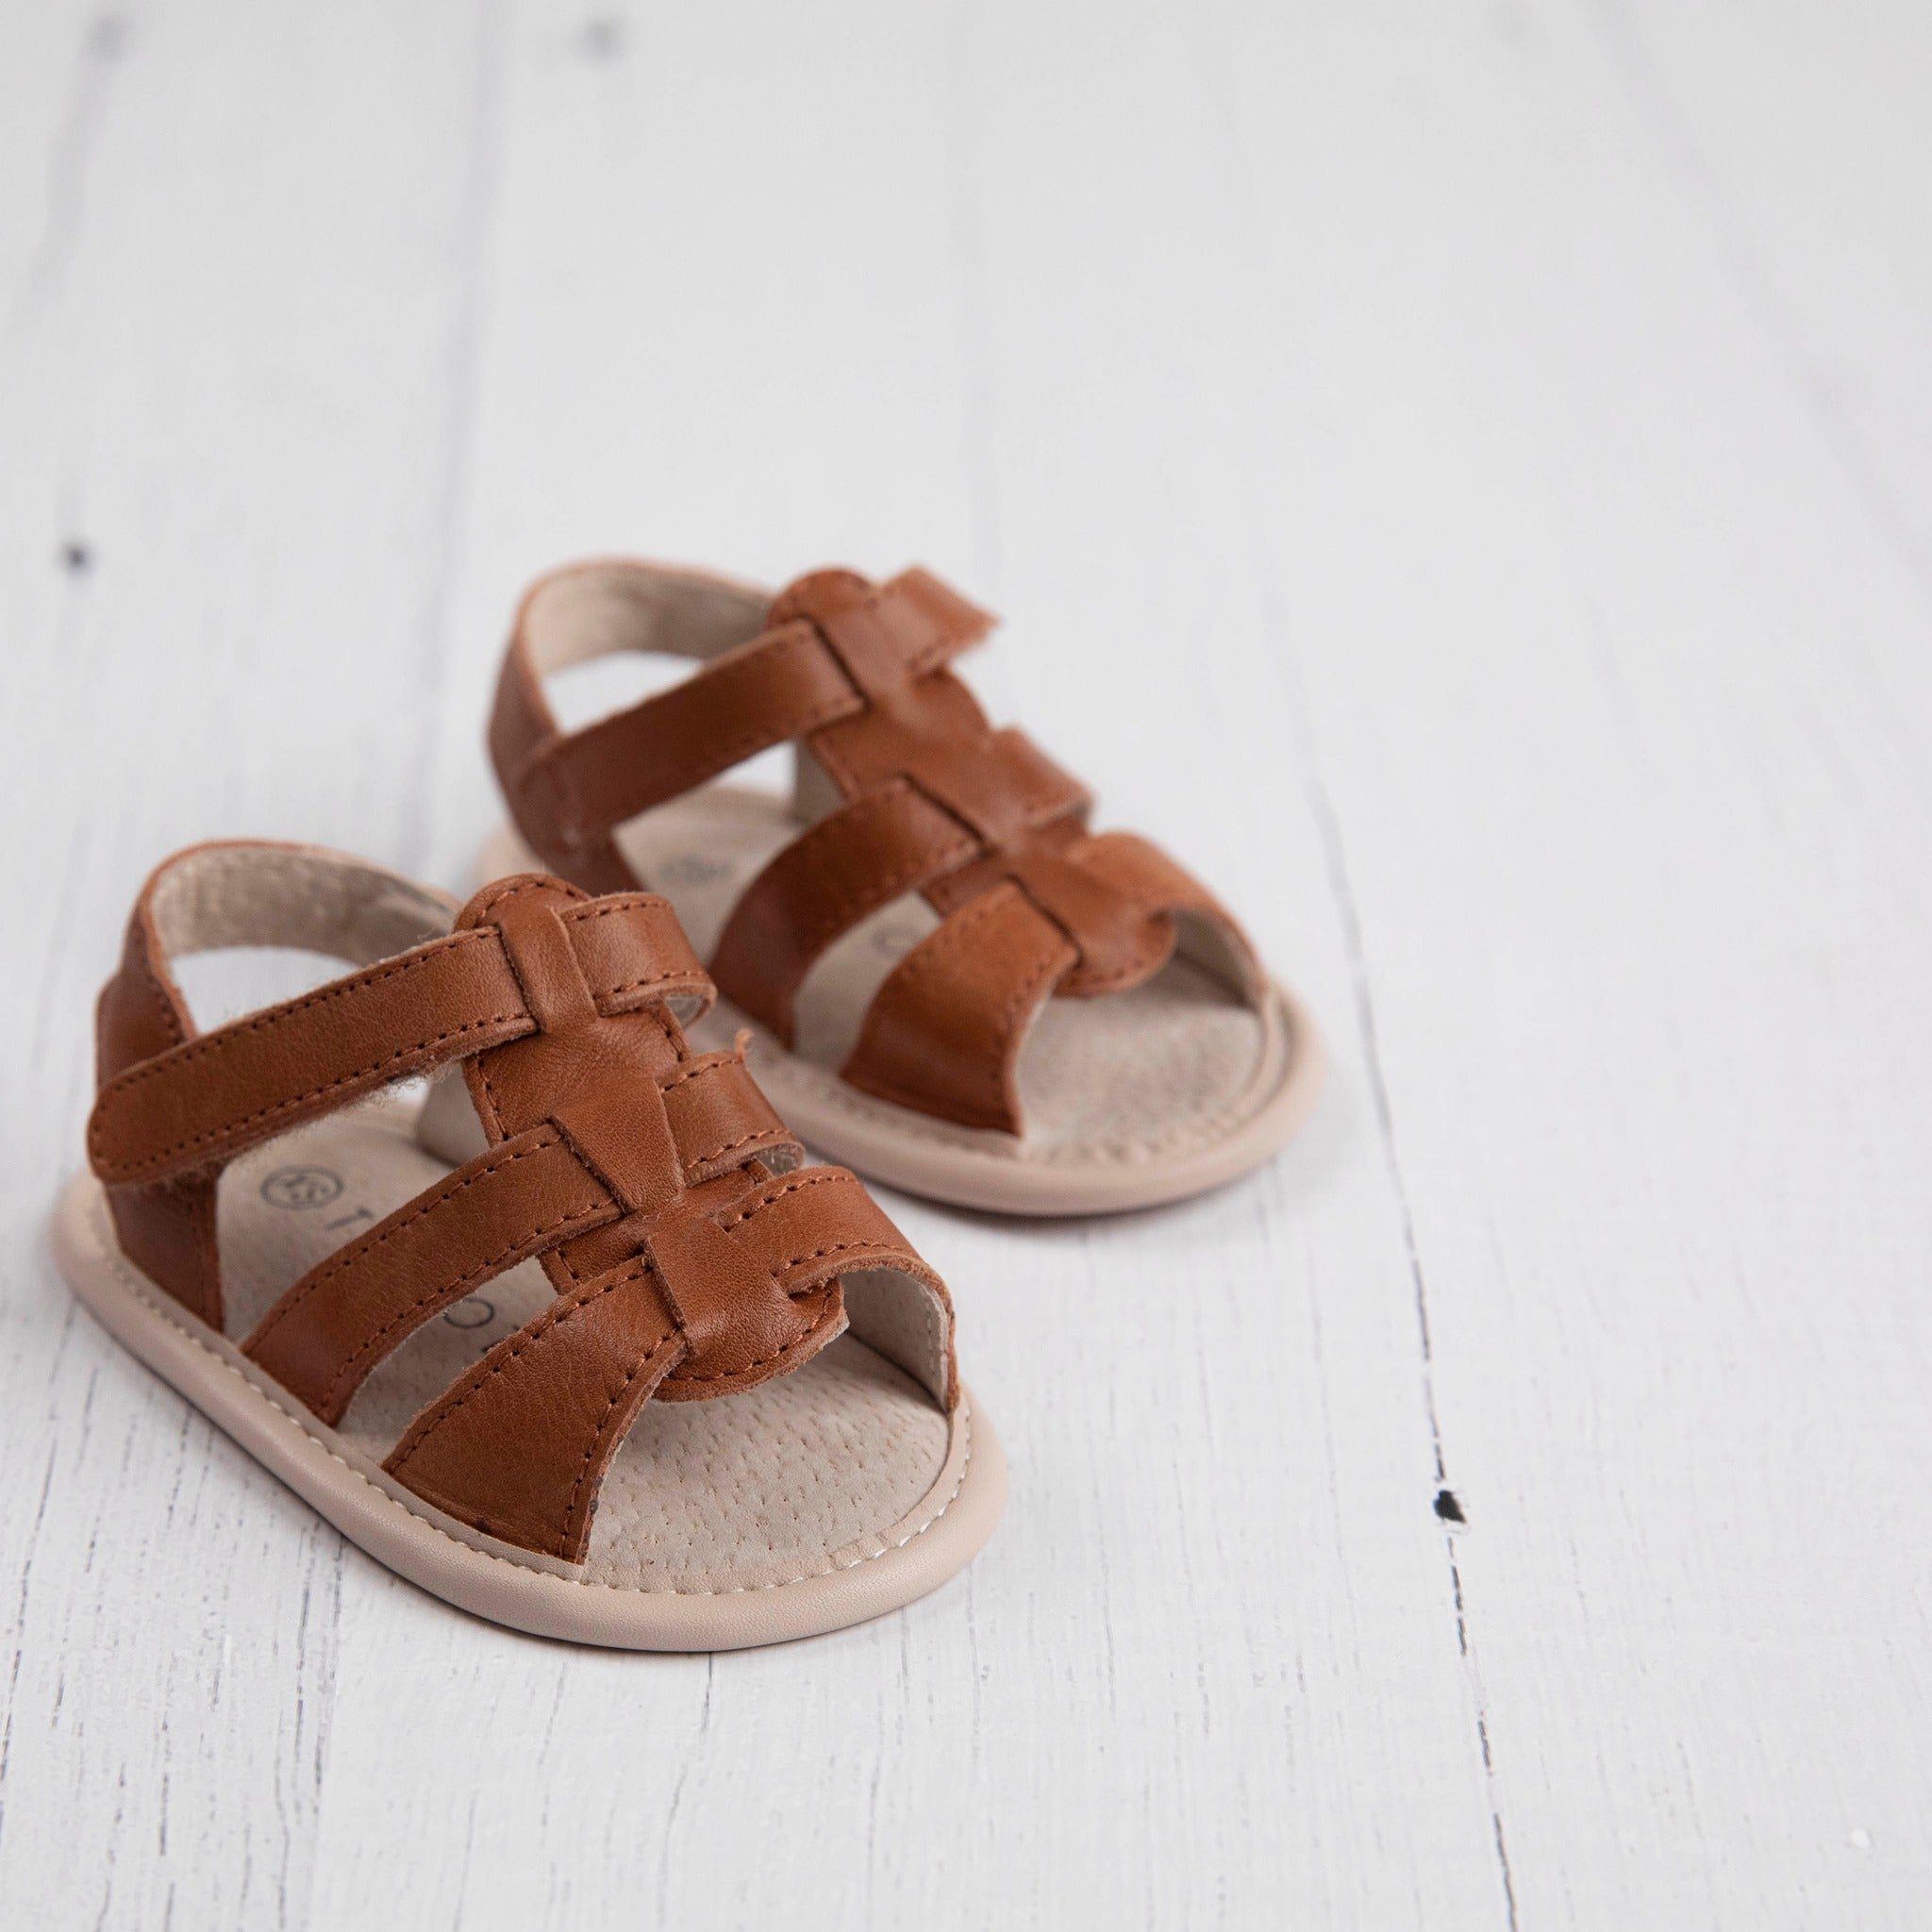 Amalfi Sandal in Honey Tan